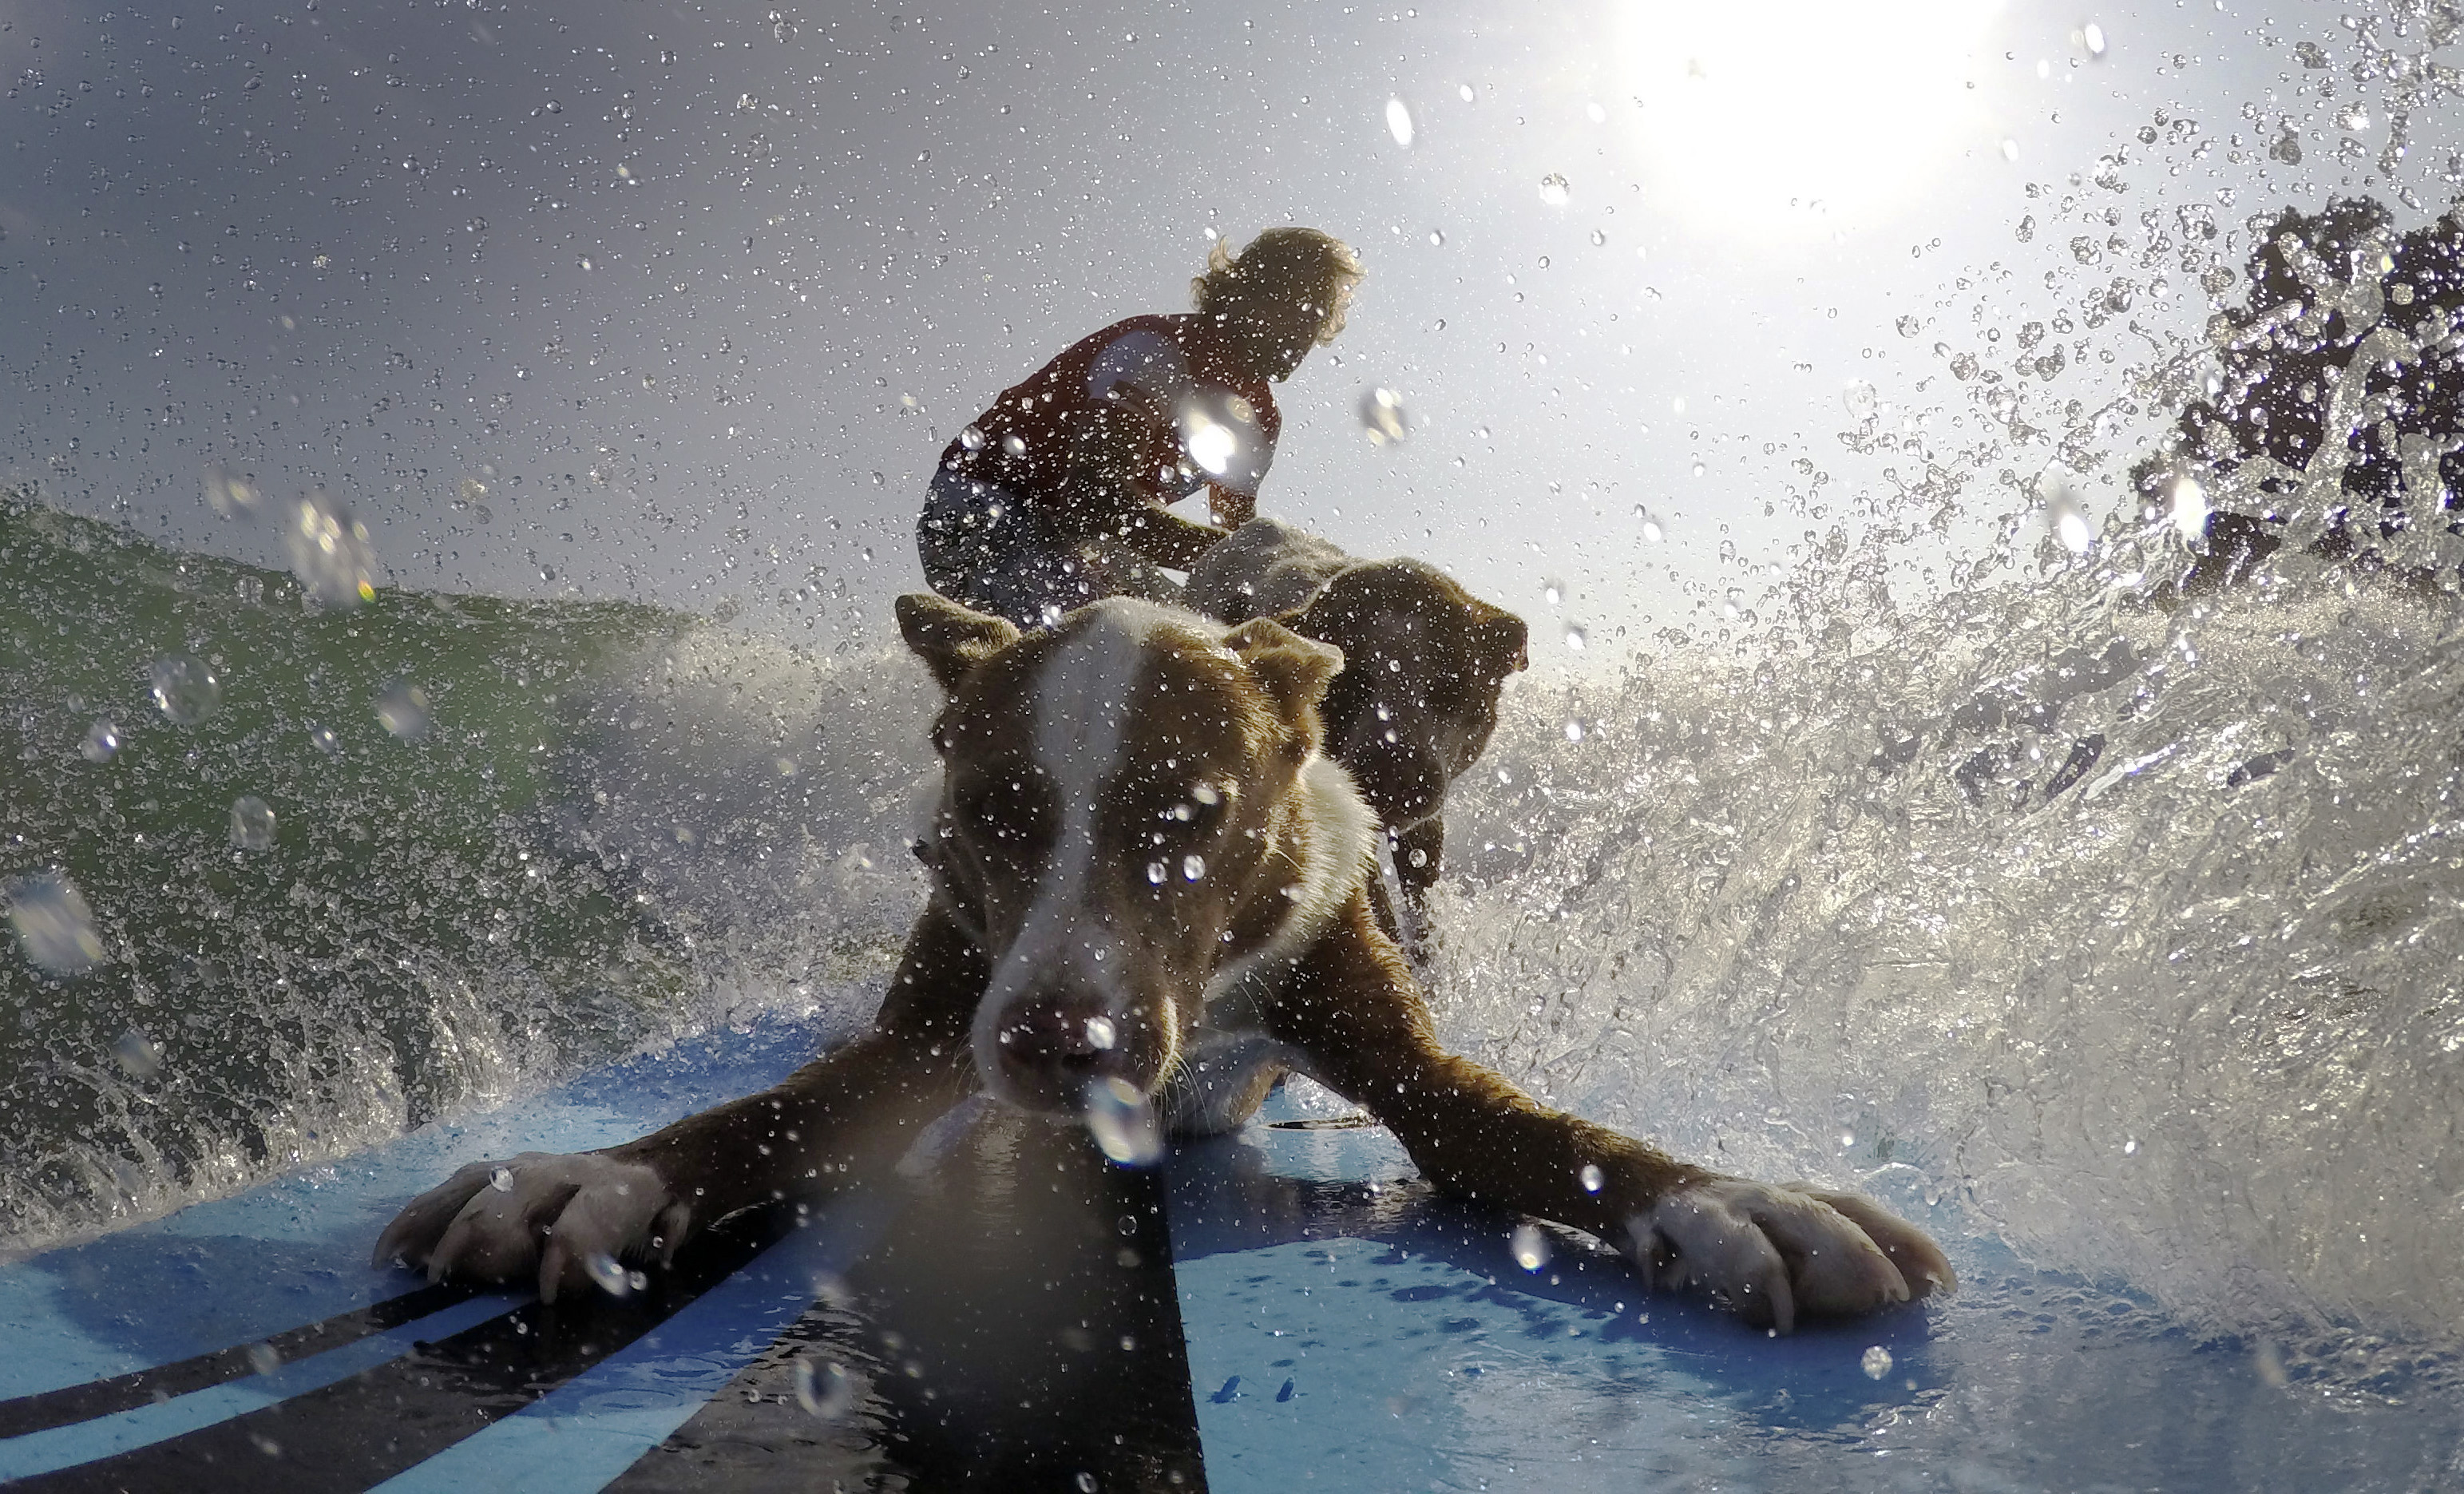 Australian dog trainer and former surfing champion Chris de Aboitiz rides a wave with his dogs Rama and Millie off Sydney's Palm Beach, Australia, on Feb. 18, 2016.